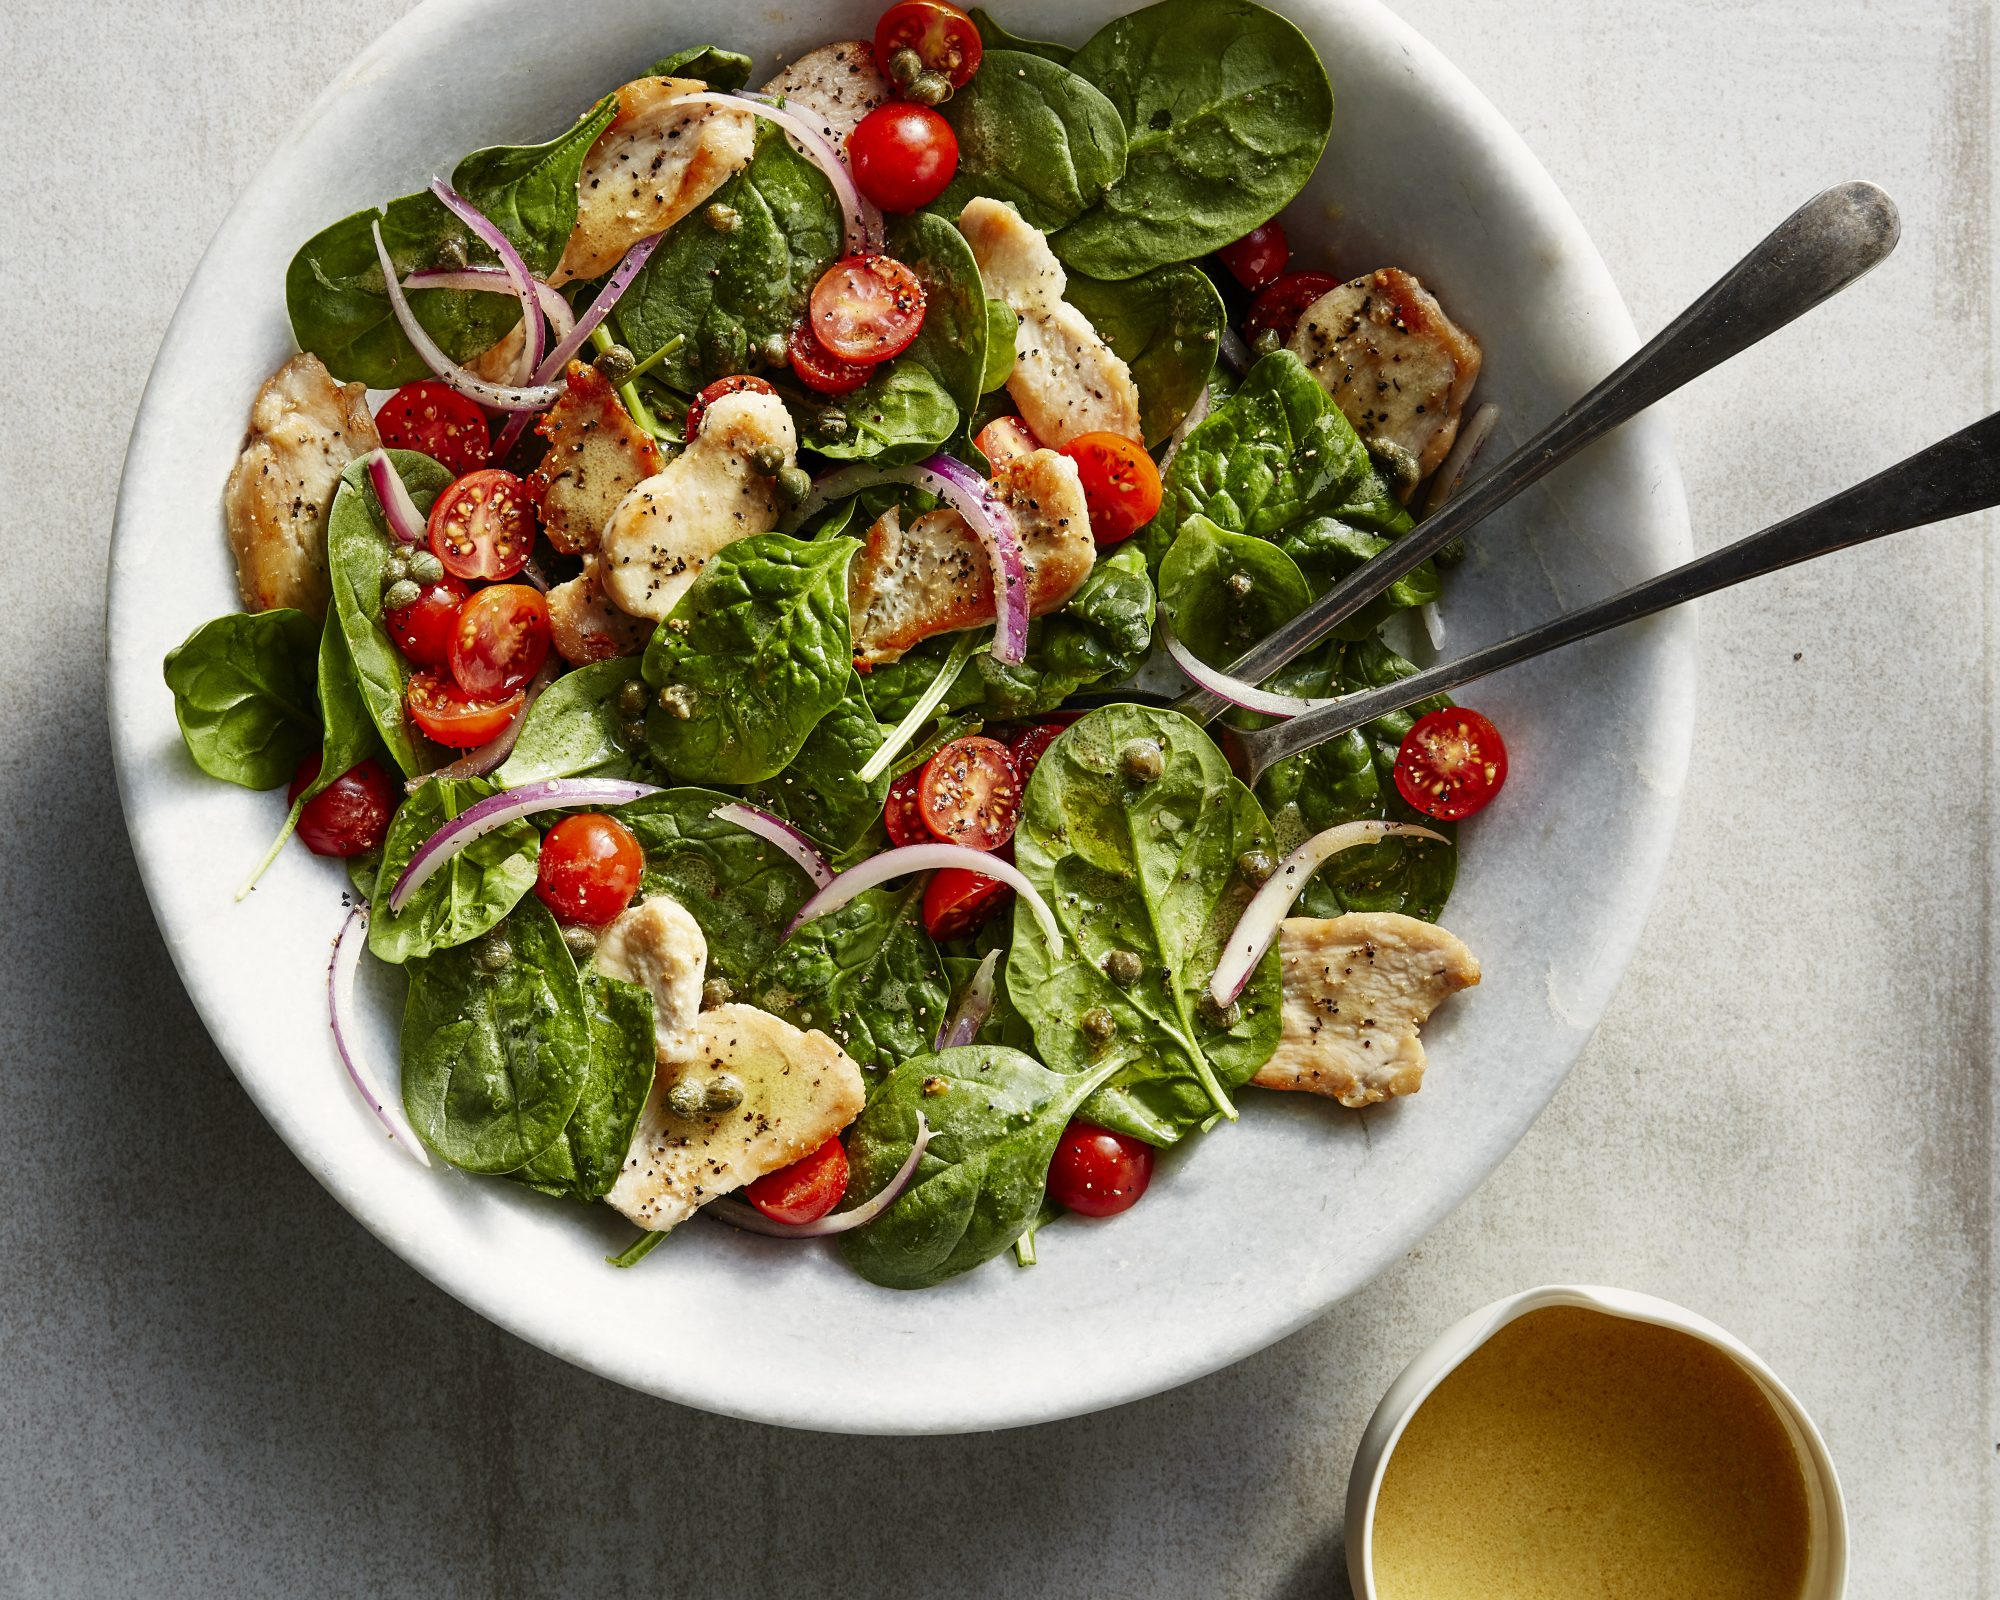 Hot and Cold Chicken and Spinach Salad